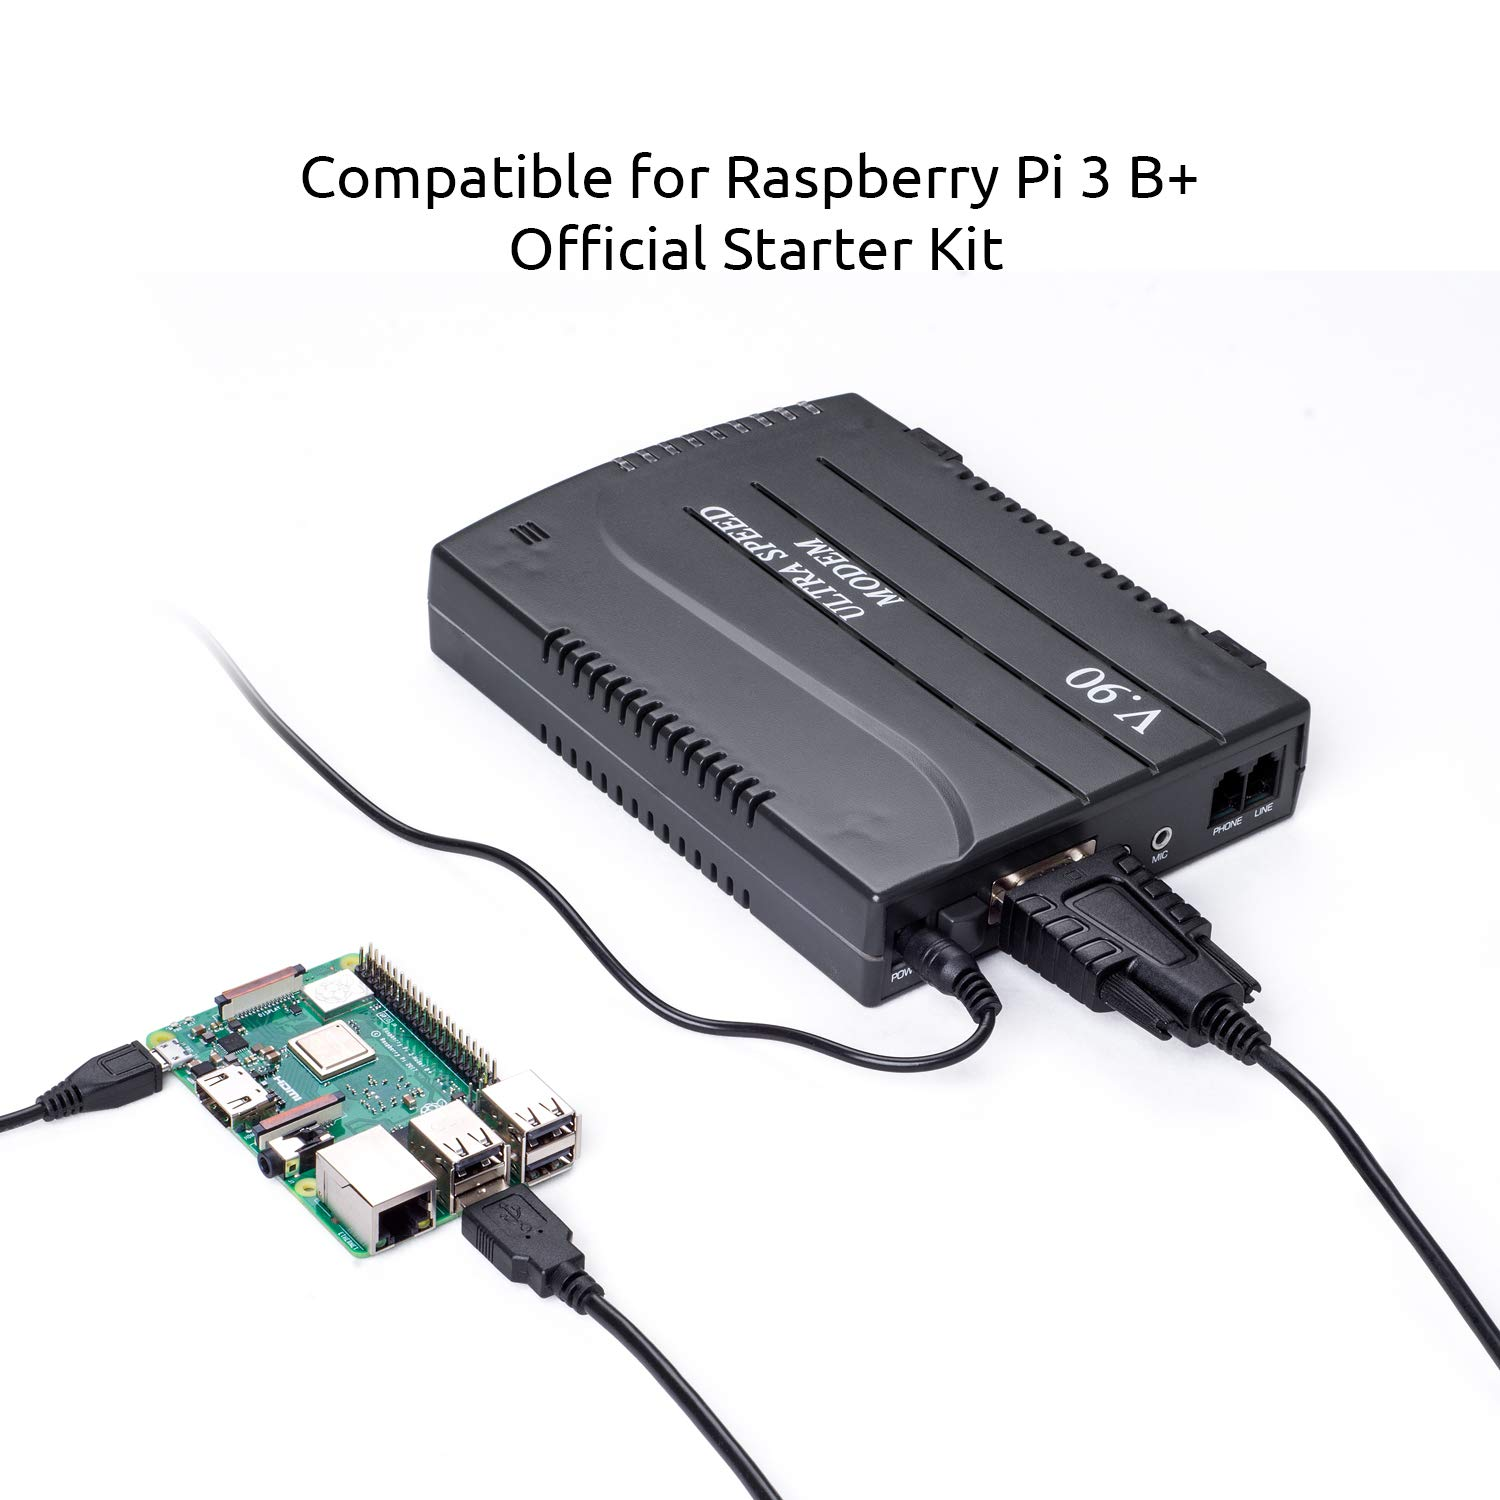 Industry RS232 Adapter CNC Router Machine Raspberry Pi 3 B+ Official Starter Kit VTOP USB to RS232 Serial DB9 Adapter for GSM GPRS Modem 9 Pin COM Port Converter Cable